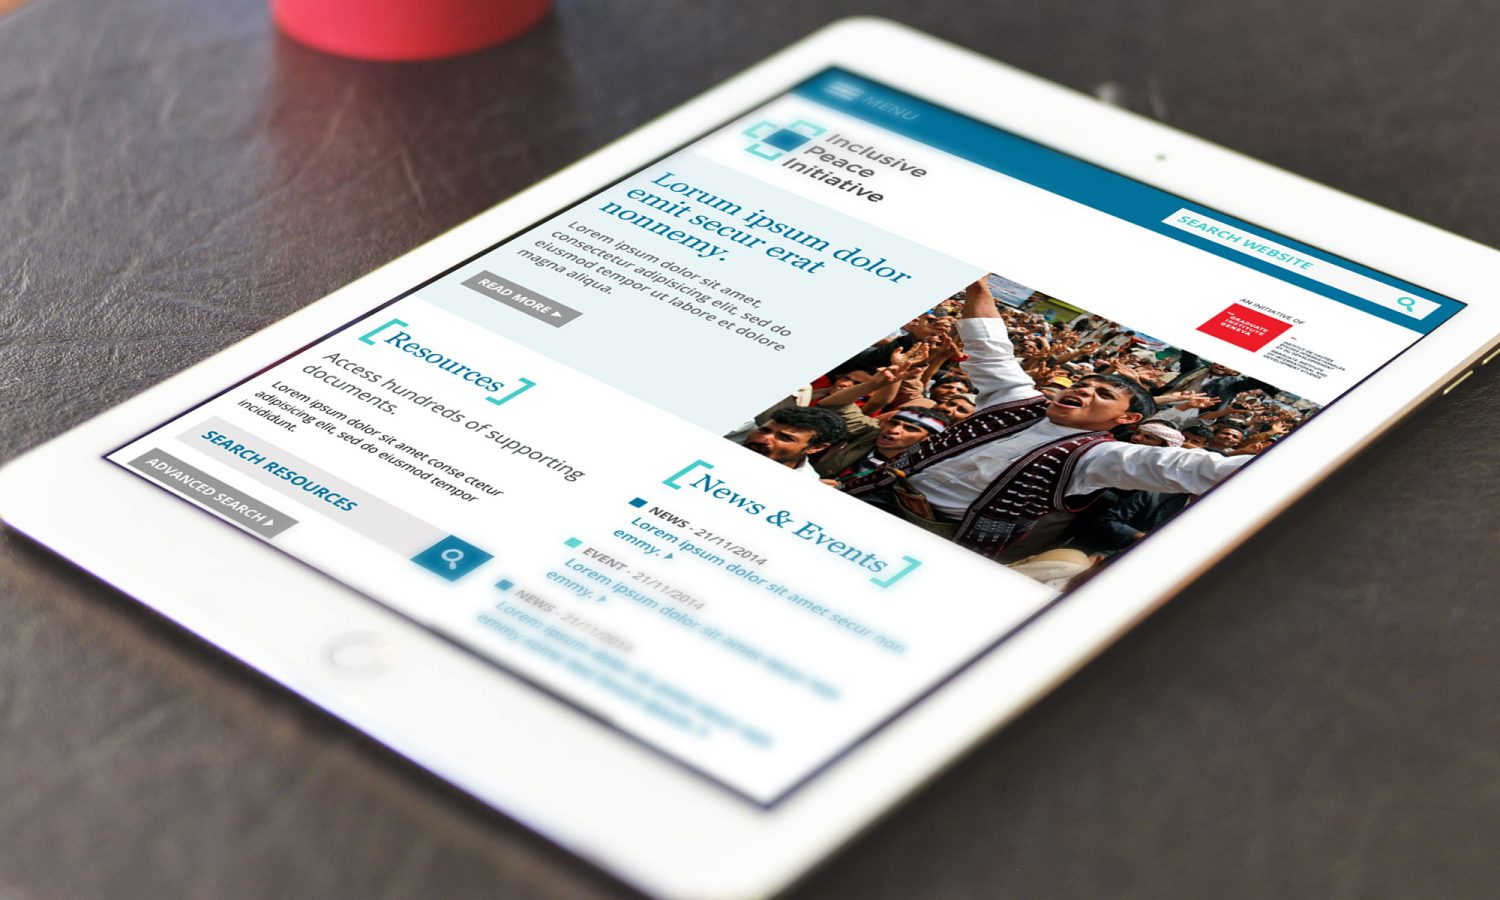 IPTI website homepage on tablet